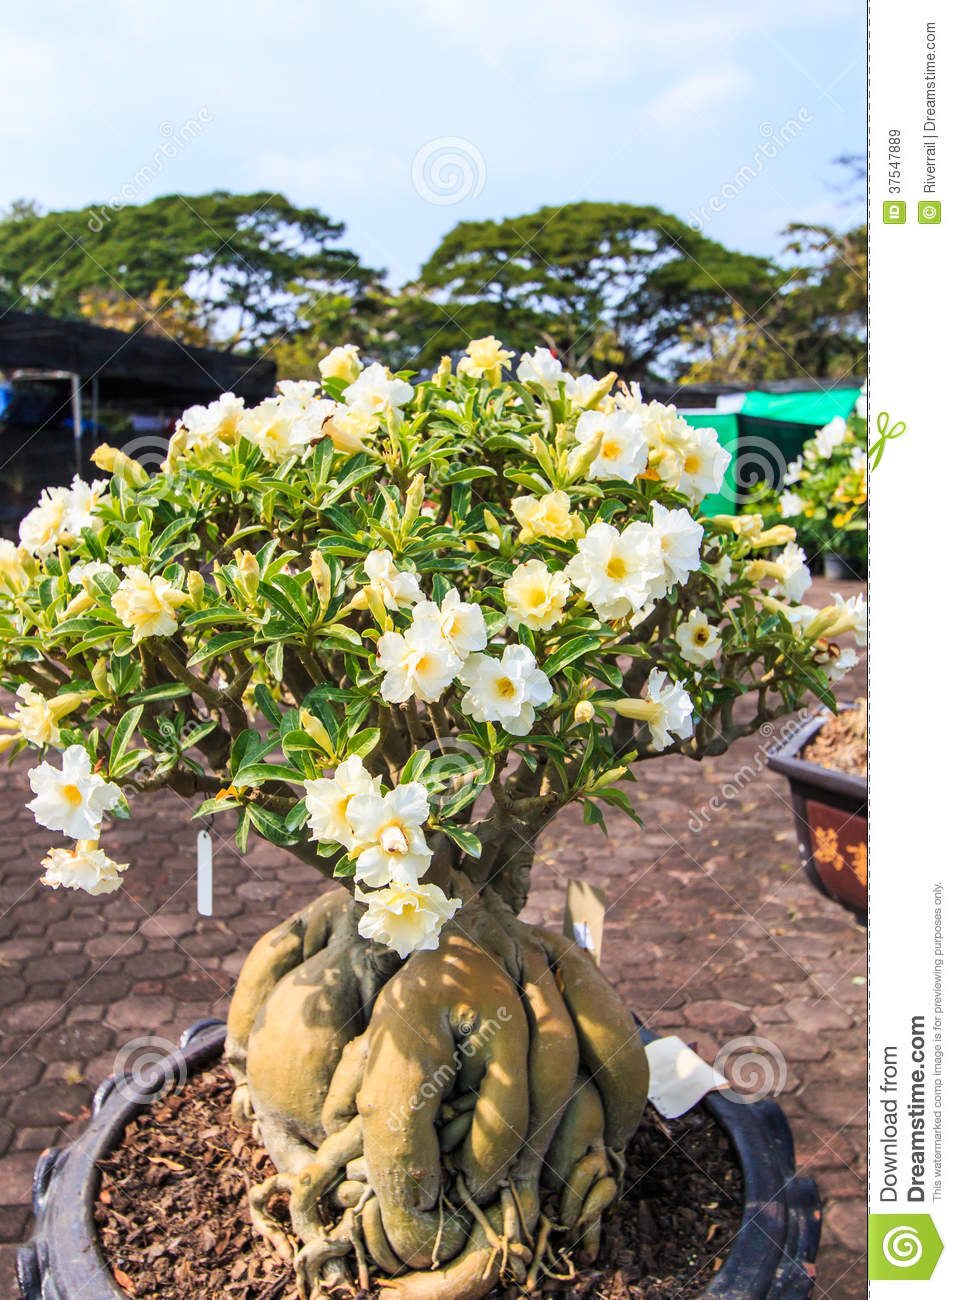 Adenium Obesum Or Bonsai Tree Royalty Free Stock Images